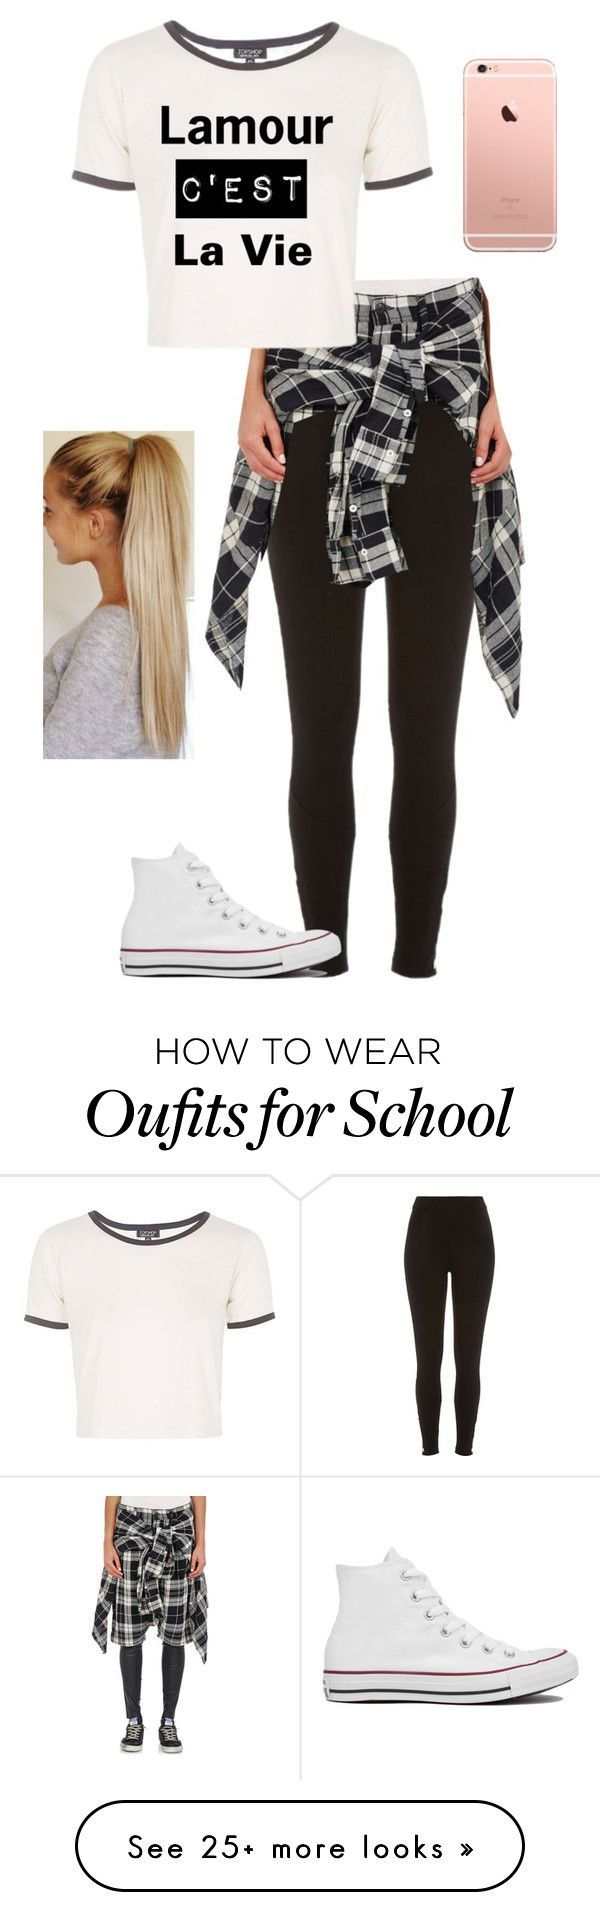 """School"" by mayaxoxo3 on Polyvore featuring River Island, R13, Topshop and Converse"